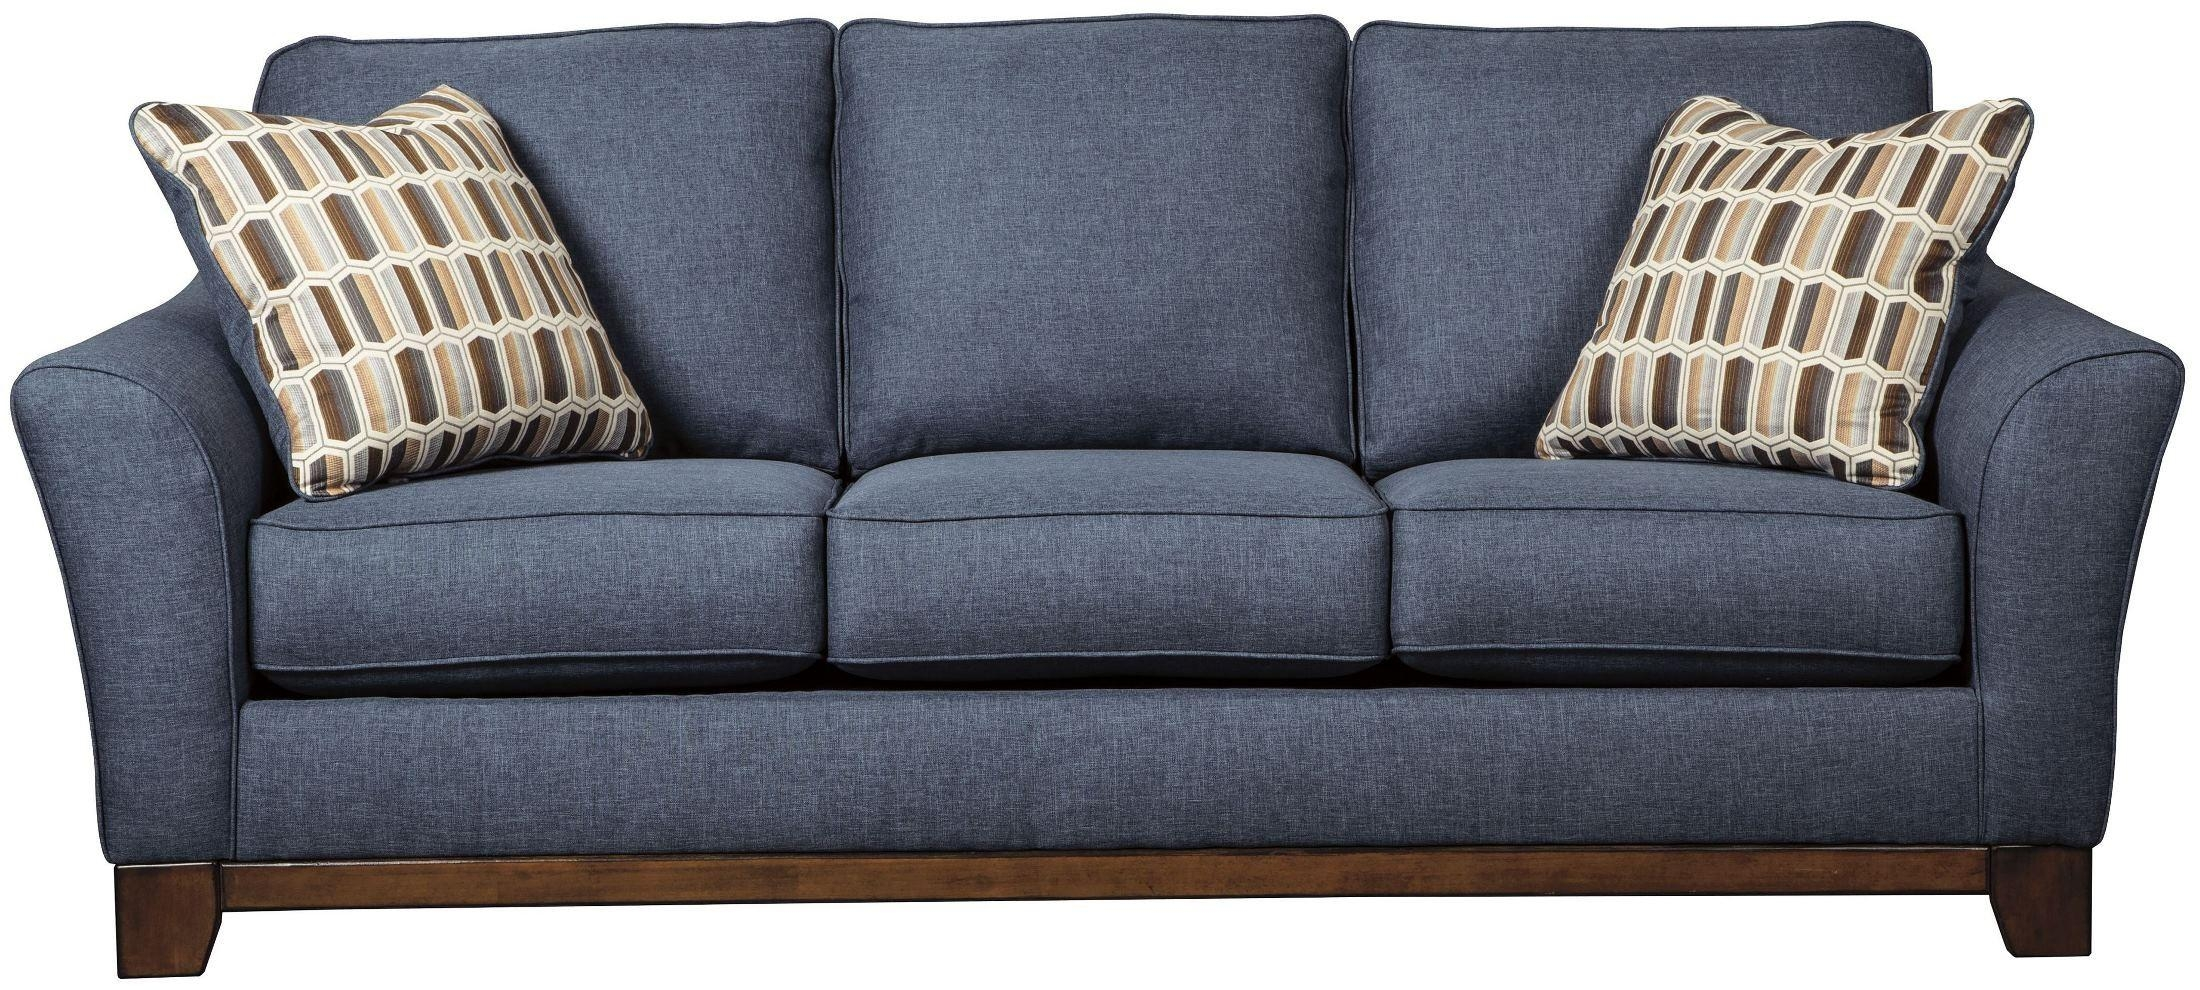 Janley Denim Sofa From Ashley | Coleman Furniture Inside Blue Denim Sofas (View 3 of 20)